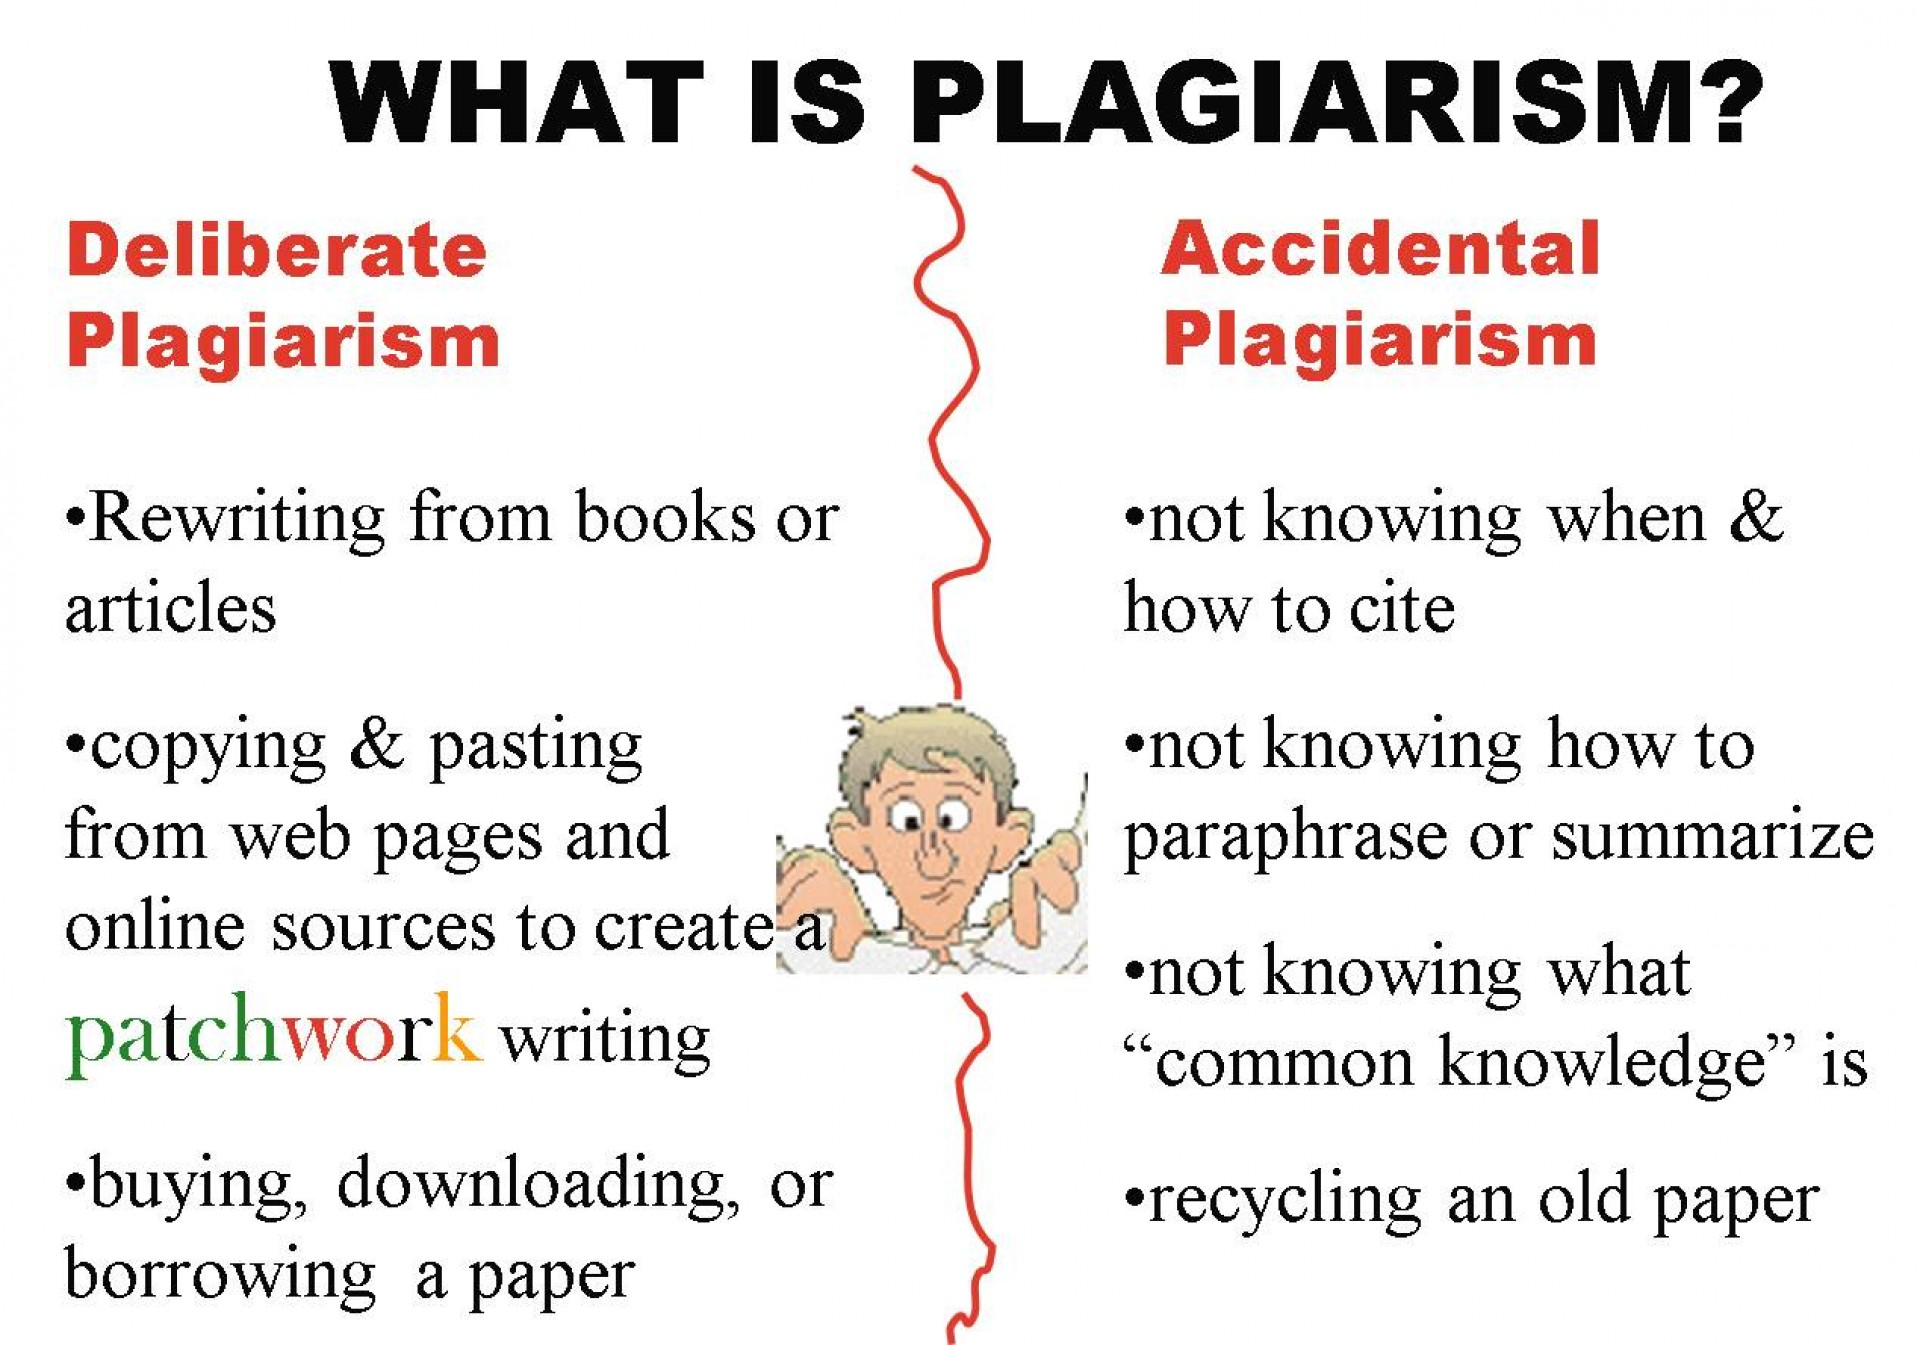 004 Whatisplagiarism 3506343 Essay Example Shocking Plagiarism Paperrater Checker Free Paper Test 1920